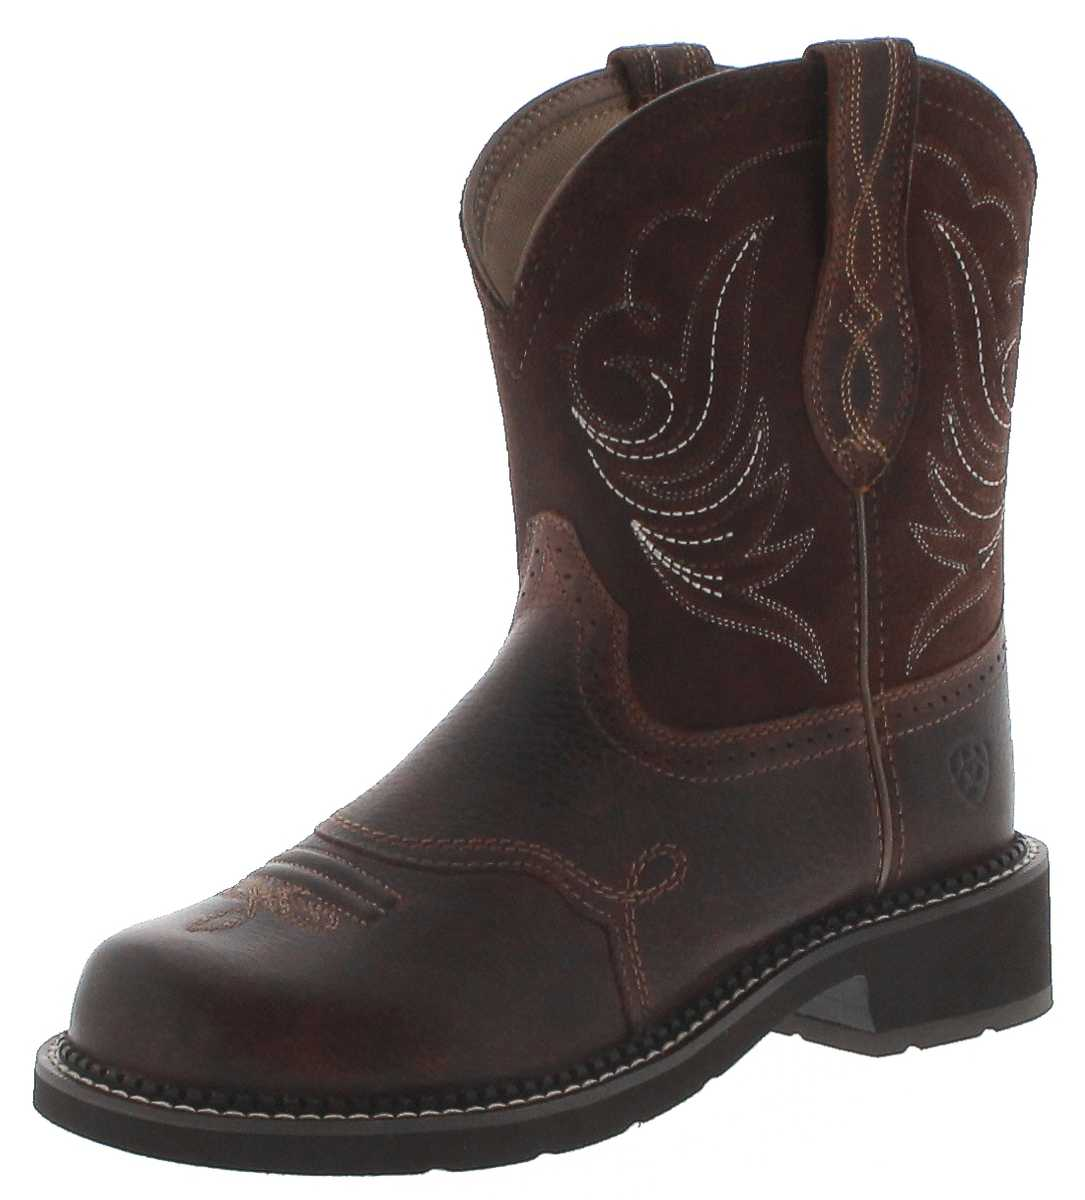 Ariat 29492 FATBABY HERITAGE DAPPER Copper Kittle Ladies Western Riding Boots - brown